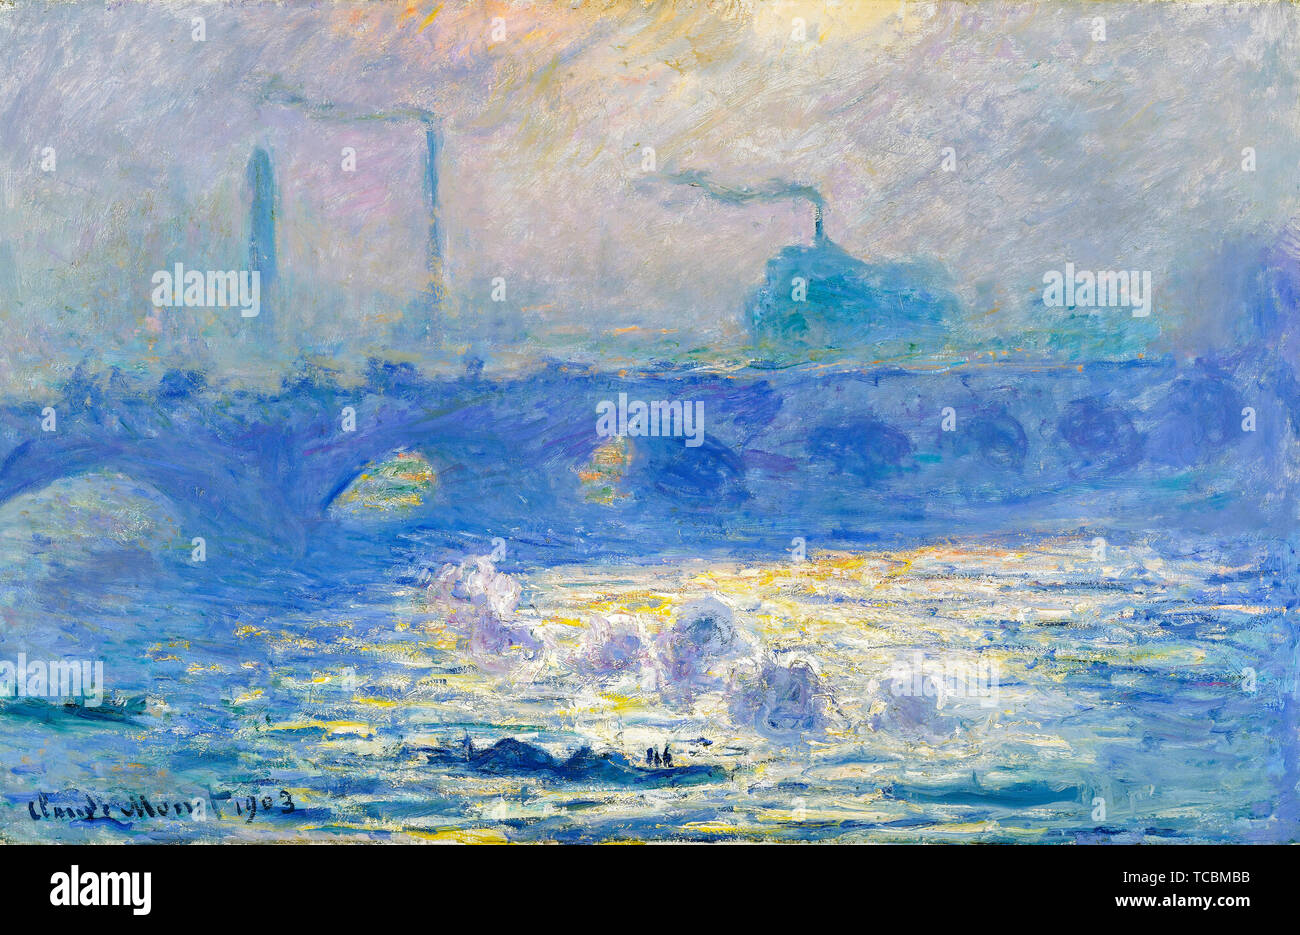 Claude Monet, Waterloo Bridge, painting, 1903 - Stock Image